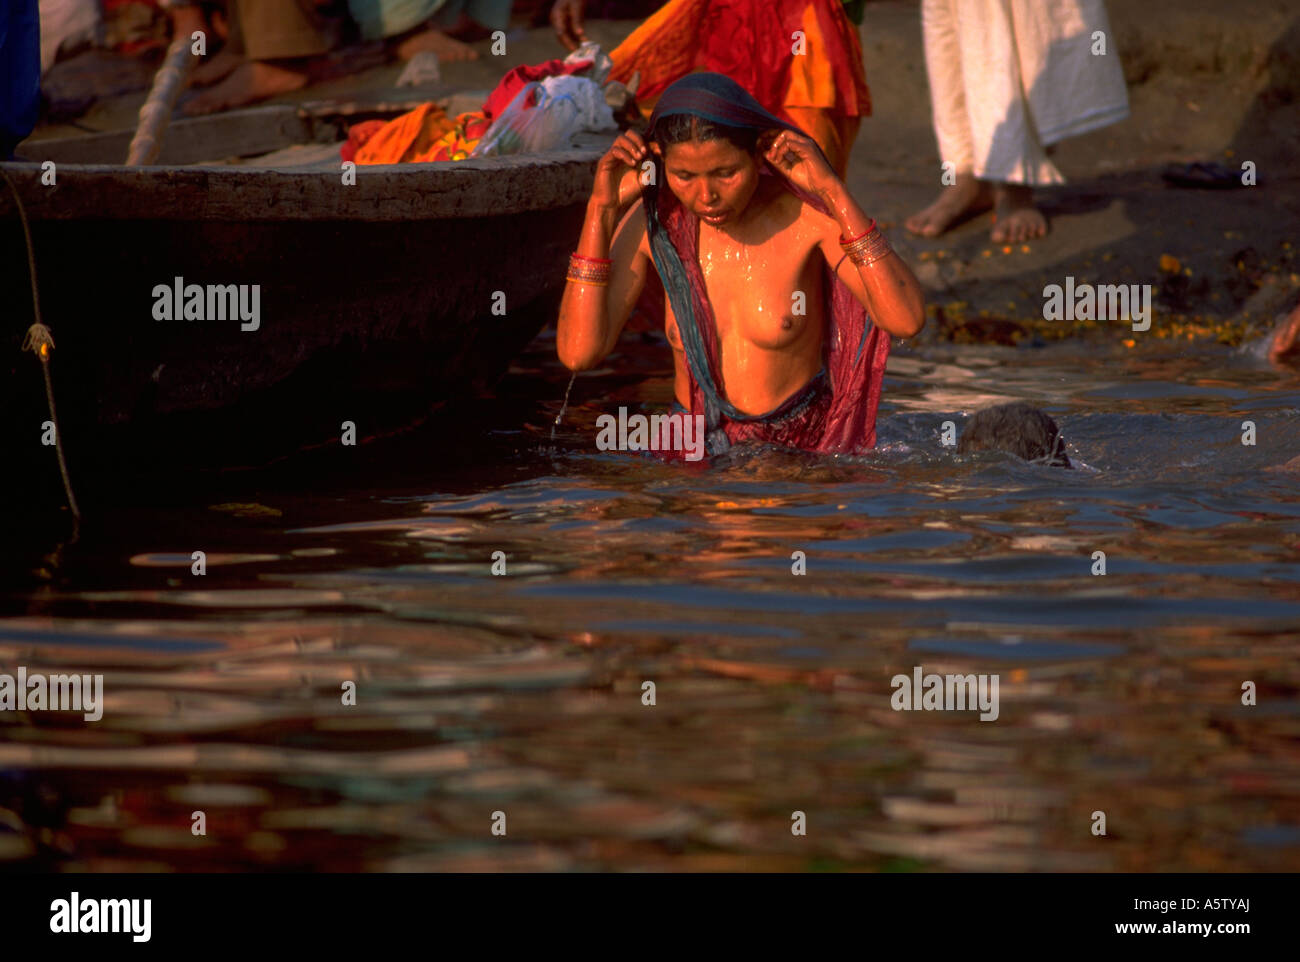 High Quality Stock Photos Of Holy River